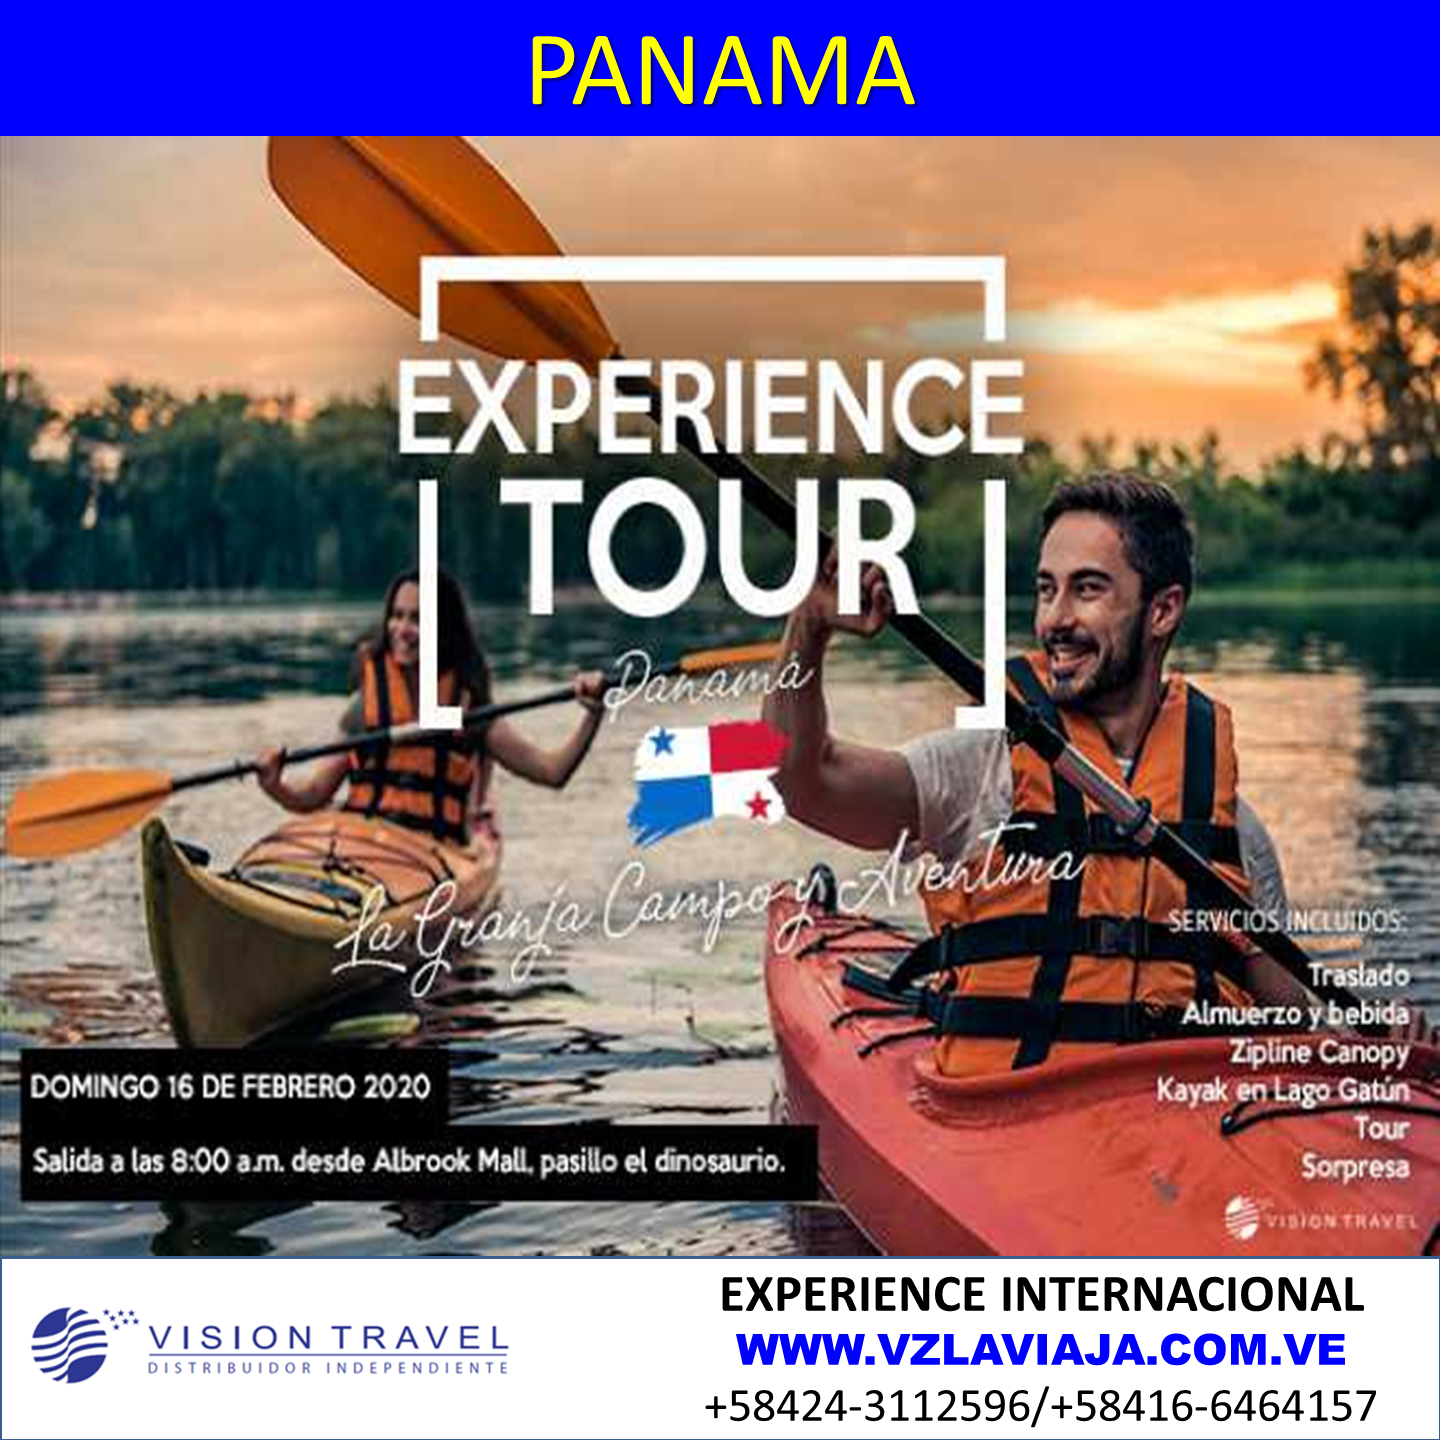 Plan Full Day Experience Tour Panamá USD